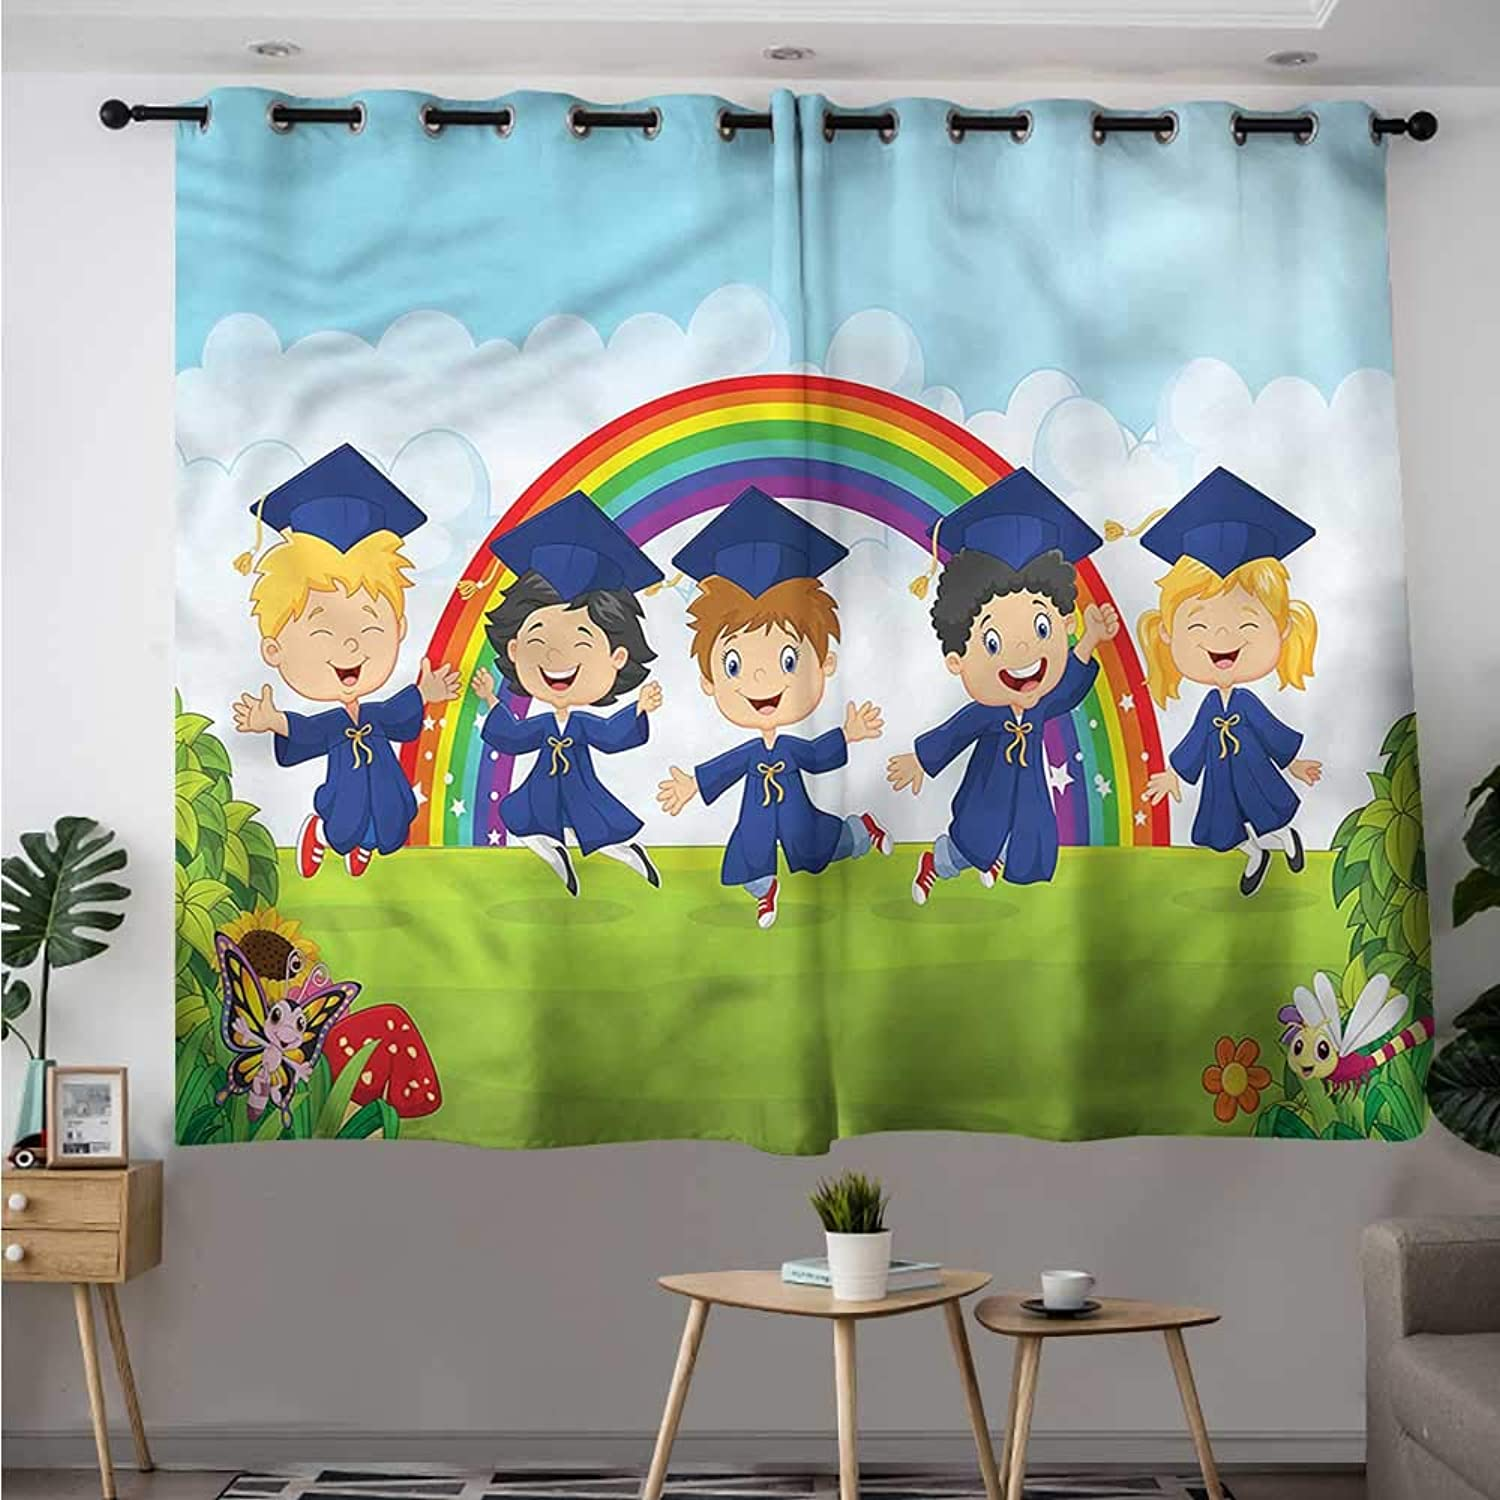 Fbdace Graduation Curtains for Bedroom Nursery Cartoon Kids Insulated with Grommet Curtains for Bedroom W 63  XL 45